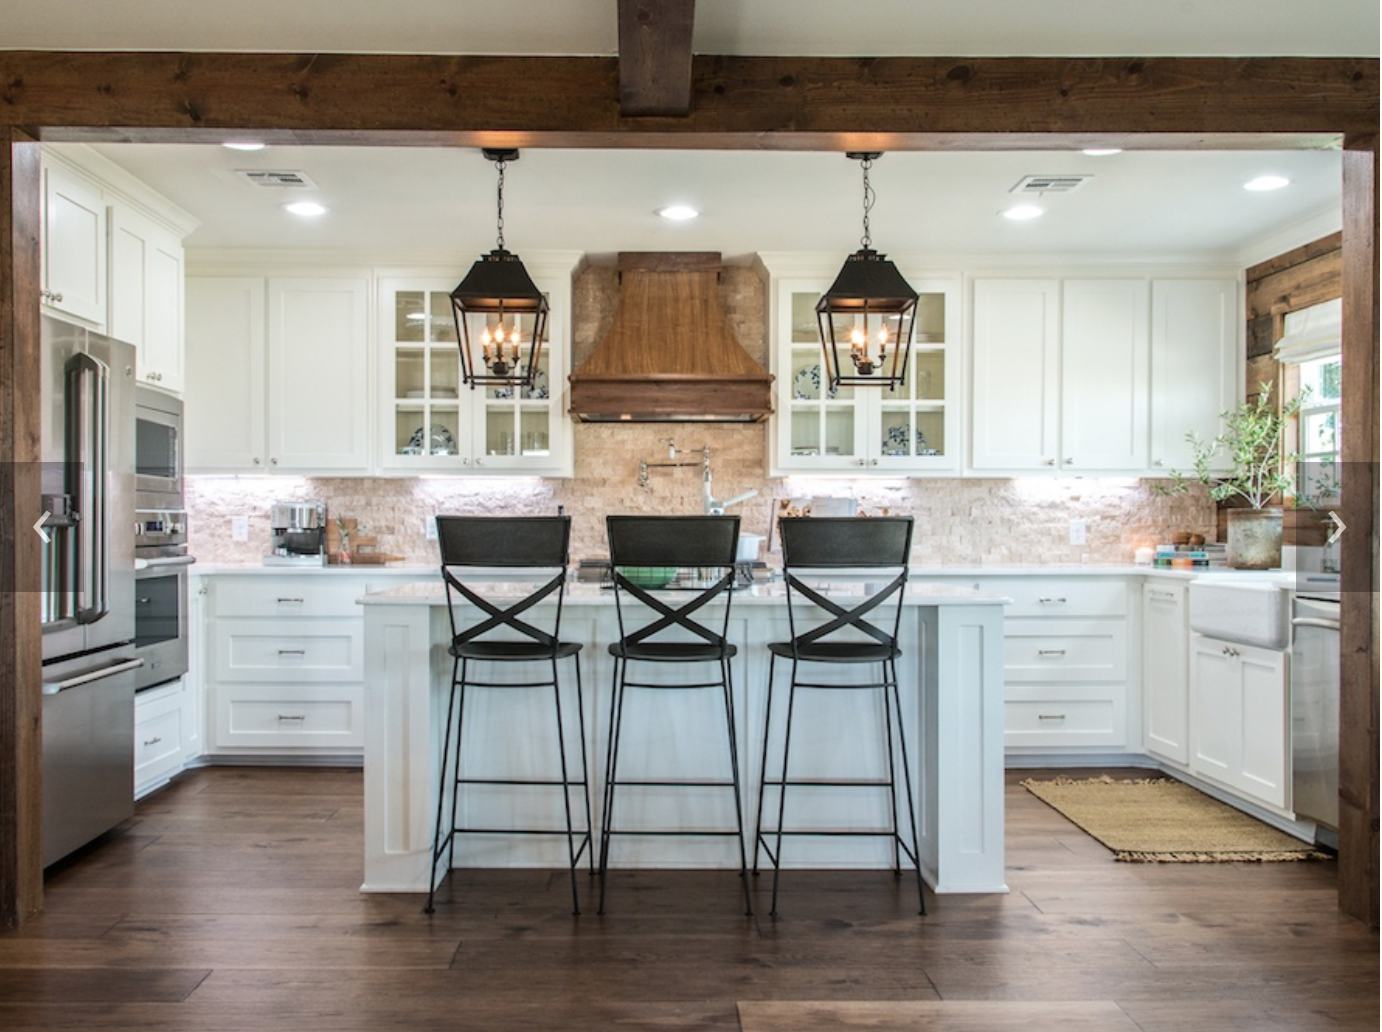 Farmhouse kitchen island lighting - Episode 04 The Big Country House